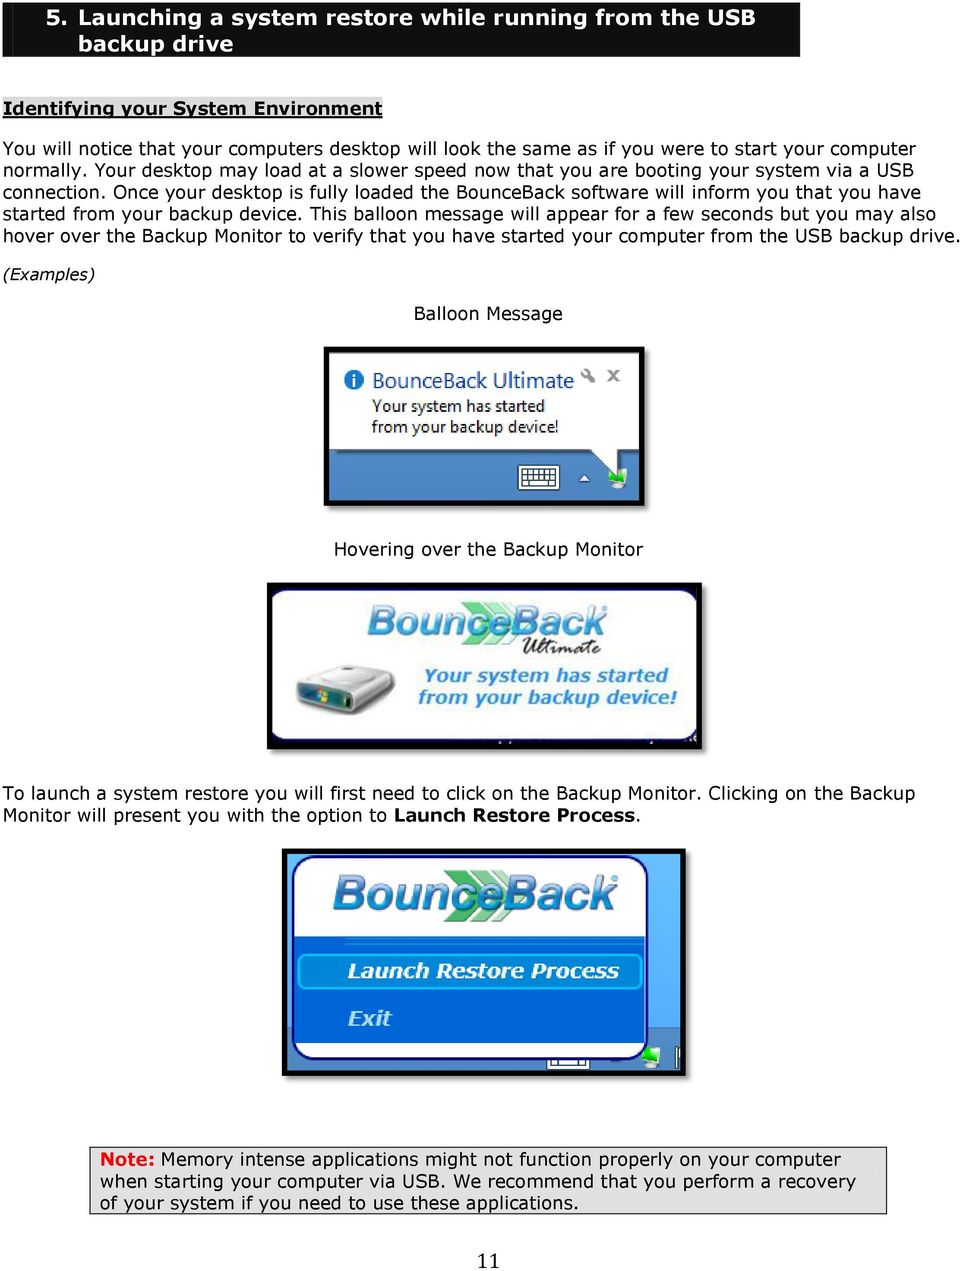 Once your desktop is fully loaded the BounceBack software will inform you that you have started from your backup device.